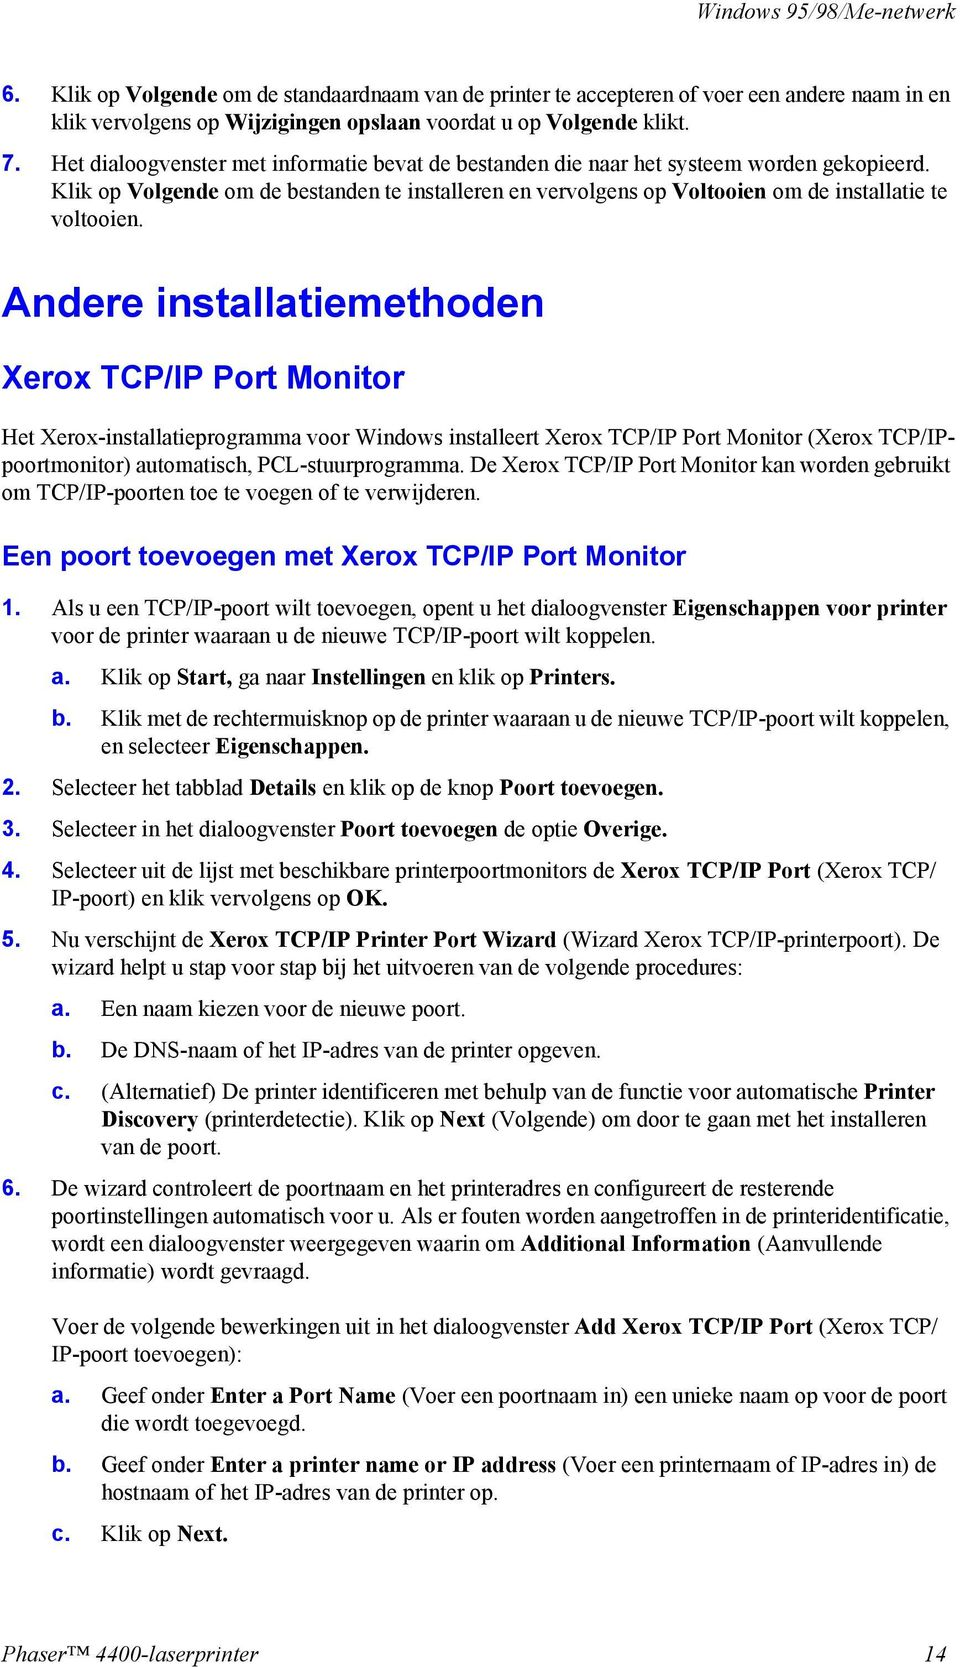 Andere installatiemethoden Xerox TCP/IP Port Monitor Het Xerox-installatieprogramma voor Windows installeert Xerox TCP/IP Port Monitor (Xerox TCP/IPpoortmonitor) automatisch, PCL-stuurprogramma.